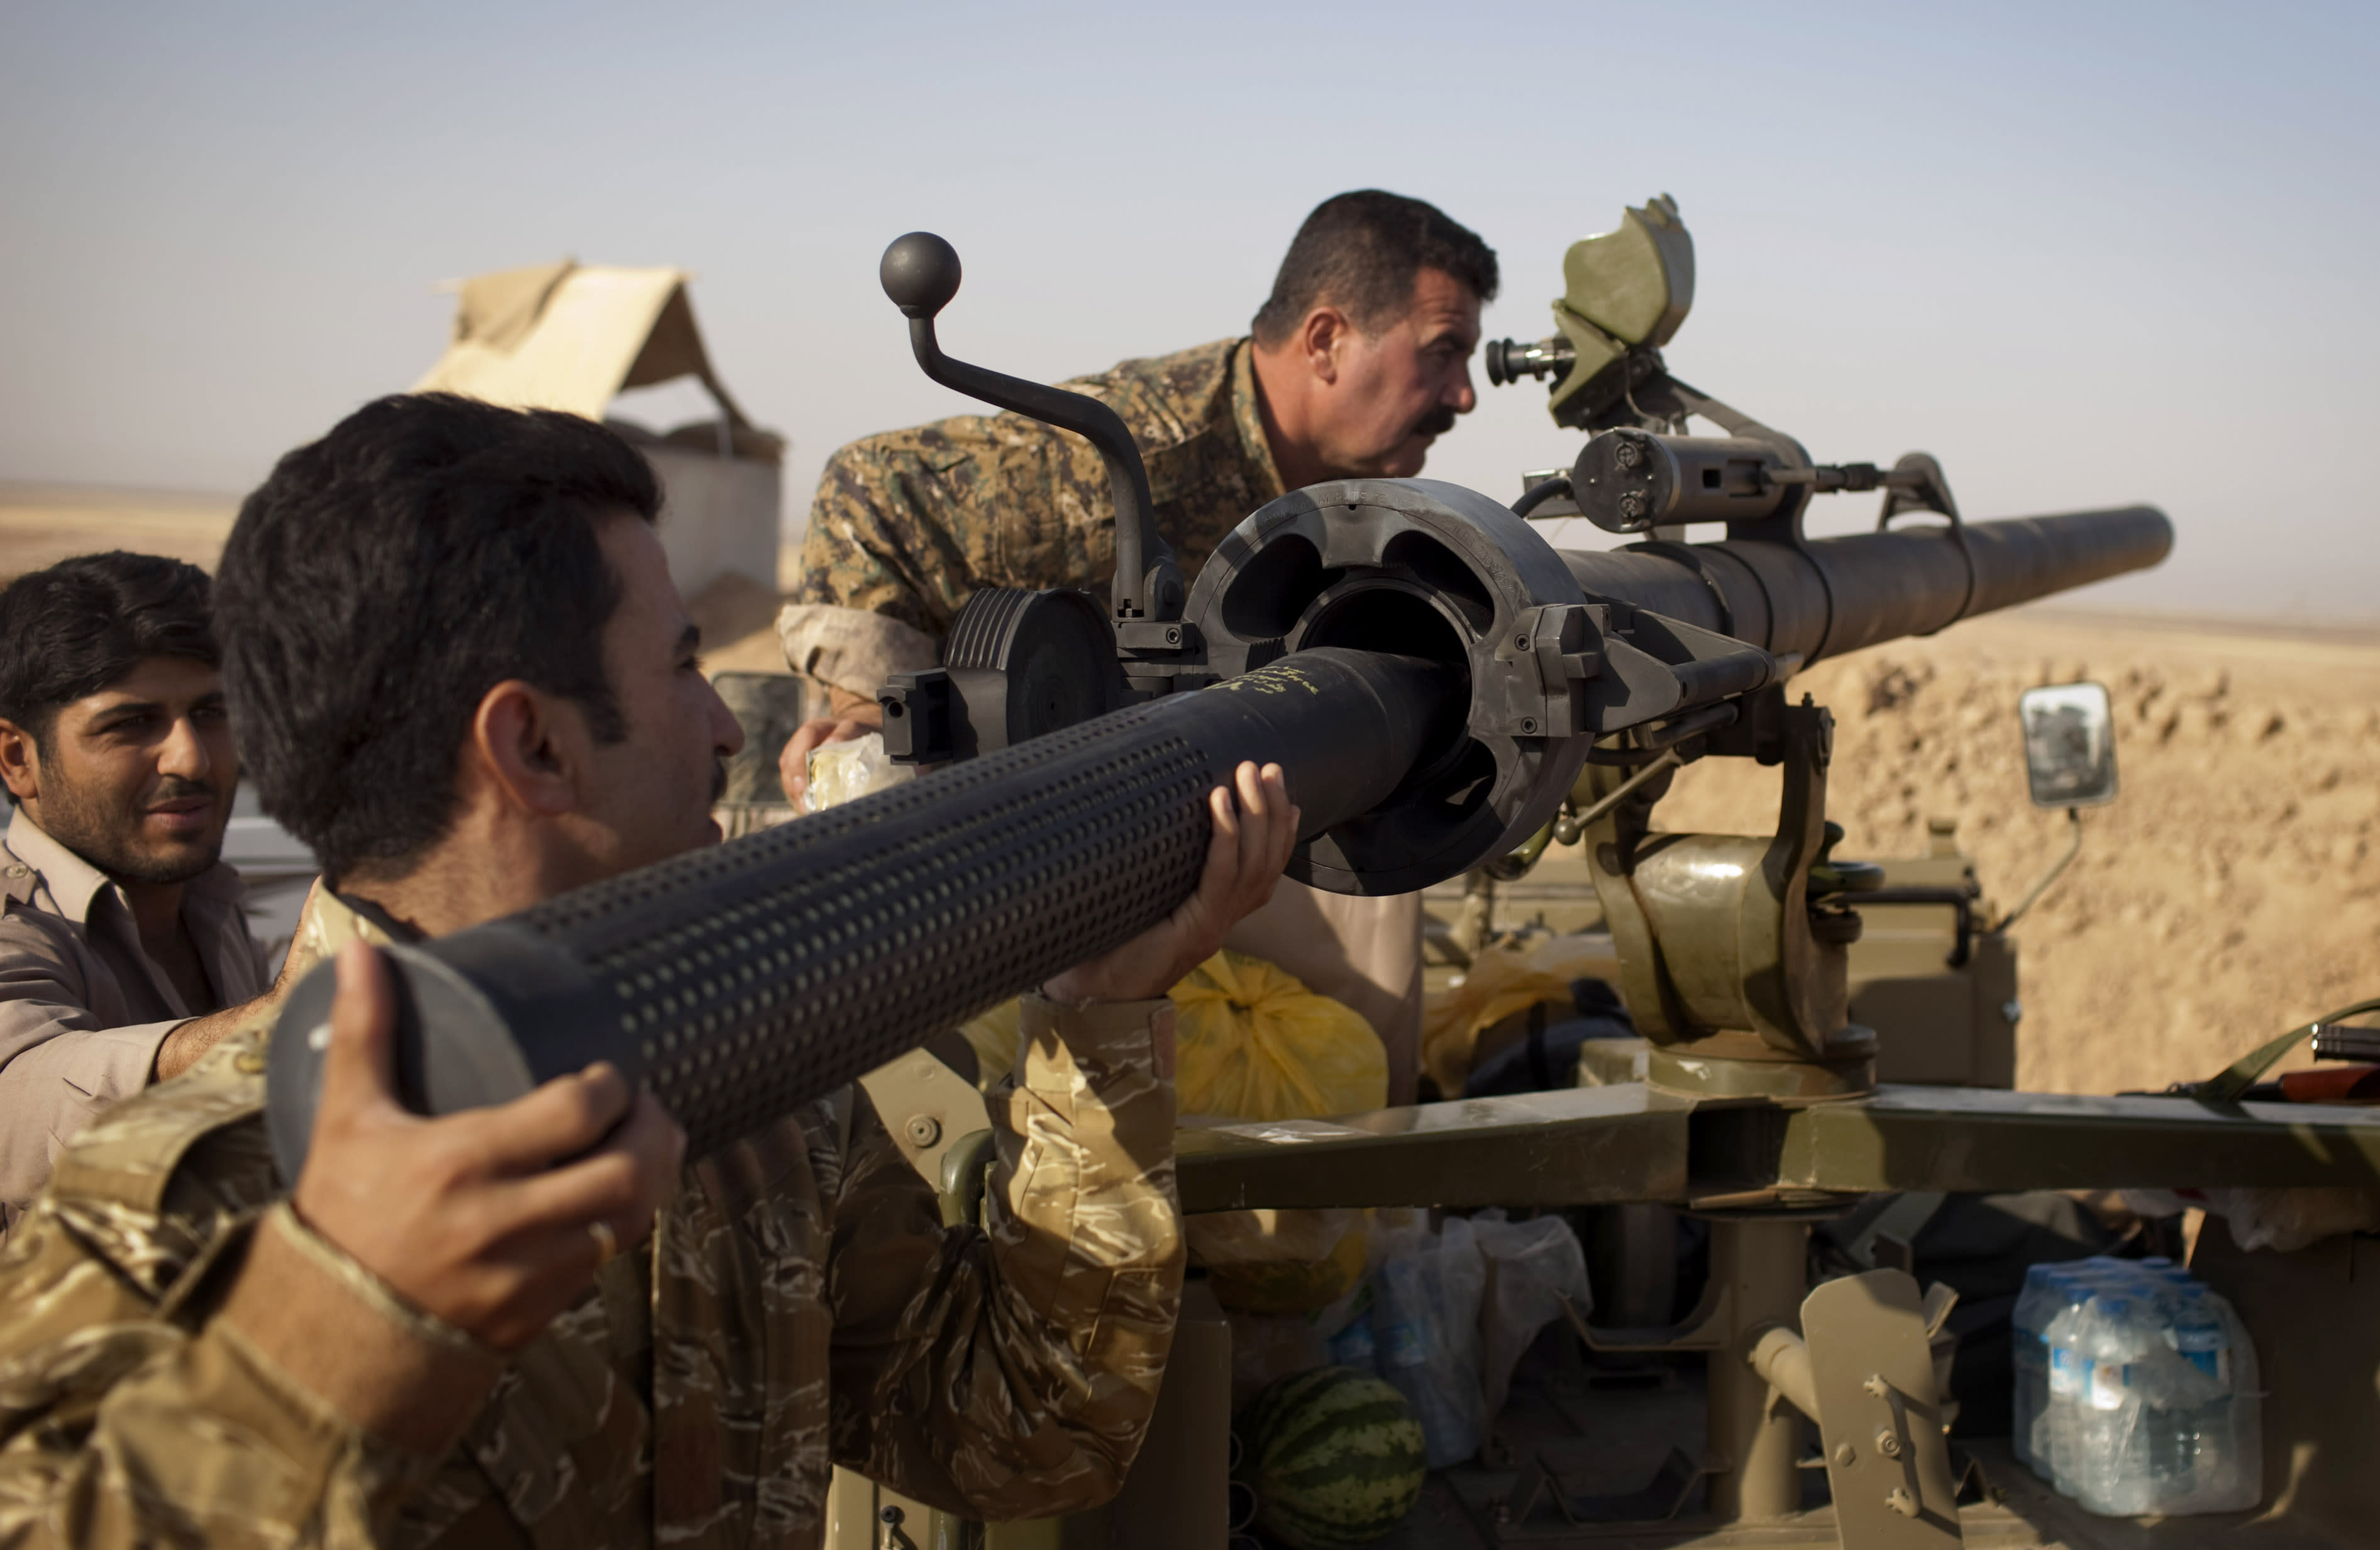 Nearly 1,000 Iraqi Kurdish peshmerga fighters have been killed fighting the Islamic State jihadist group since June, a senior security official says